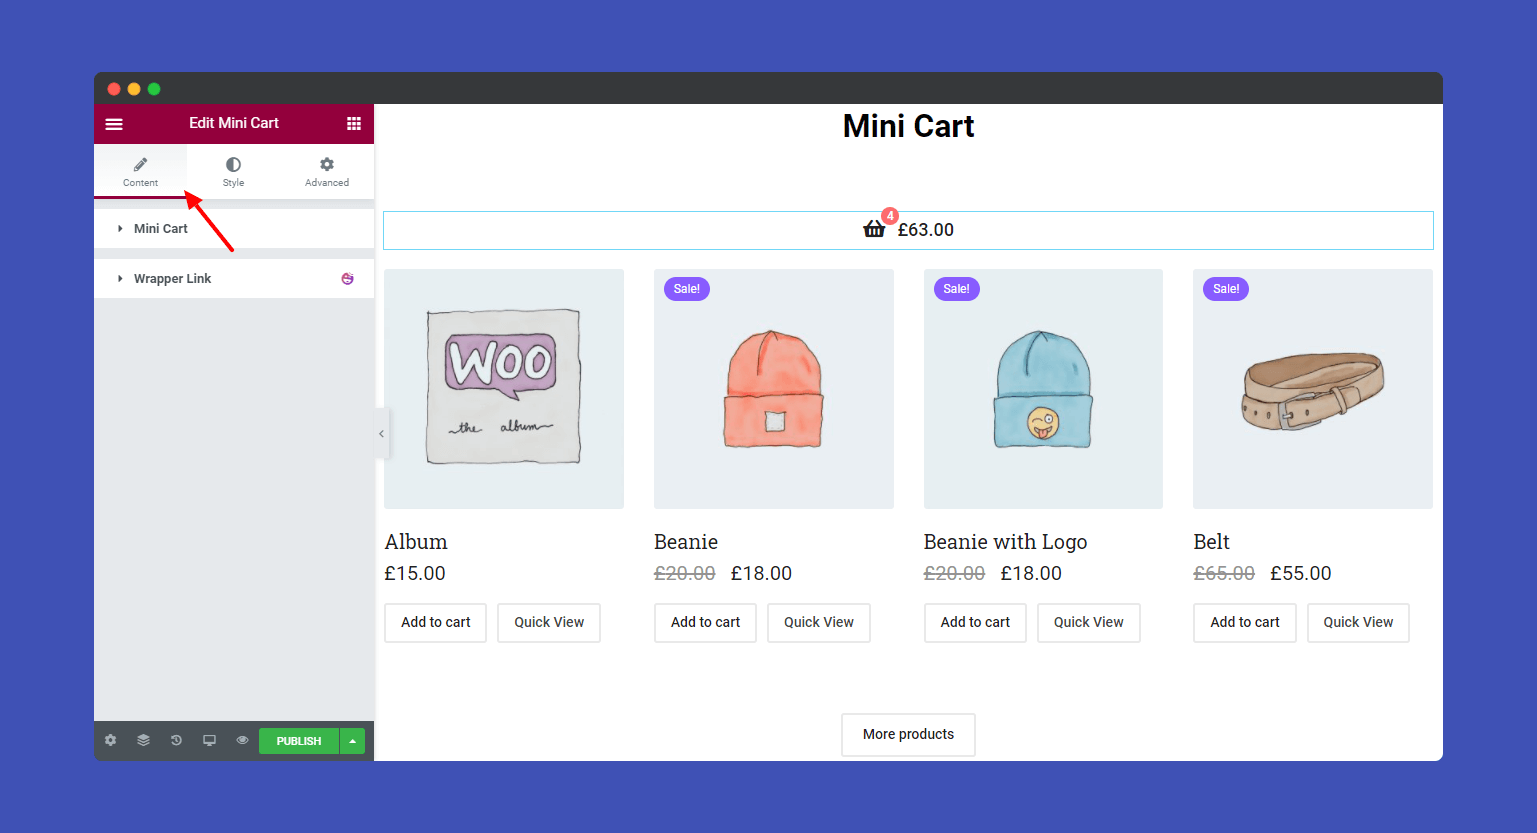 Mini Cart Content Section